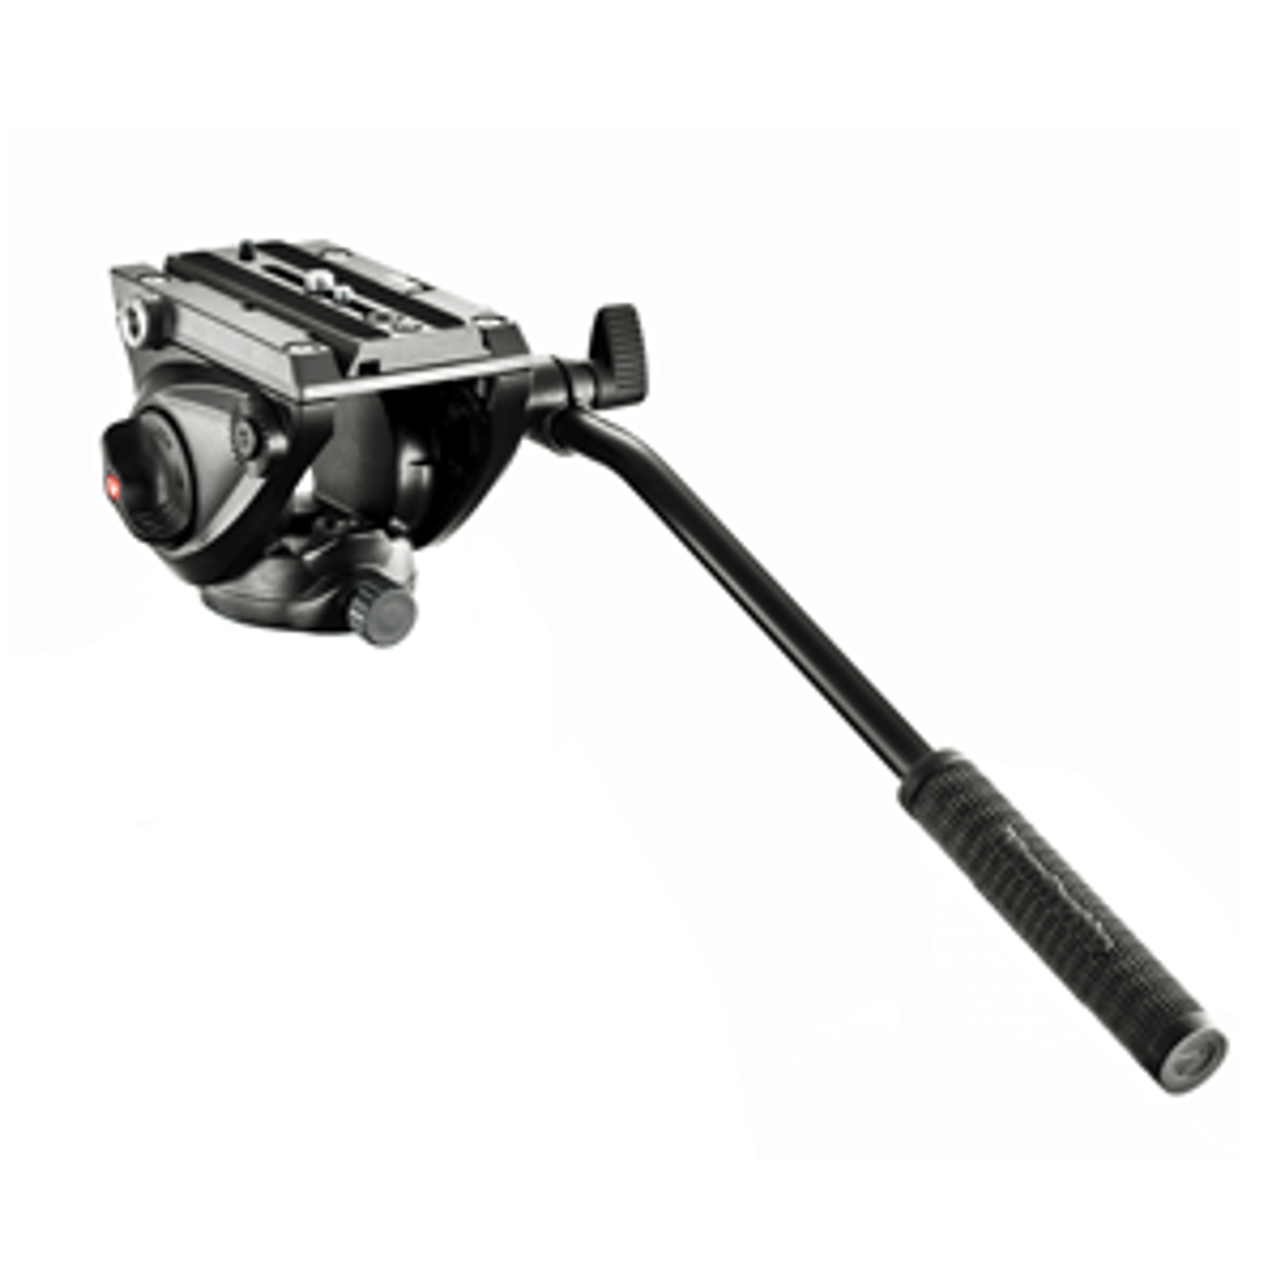 Manfrotto 500AH Video Head w/sliding Plate